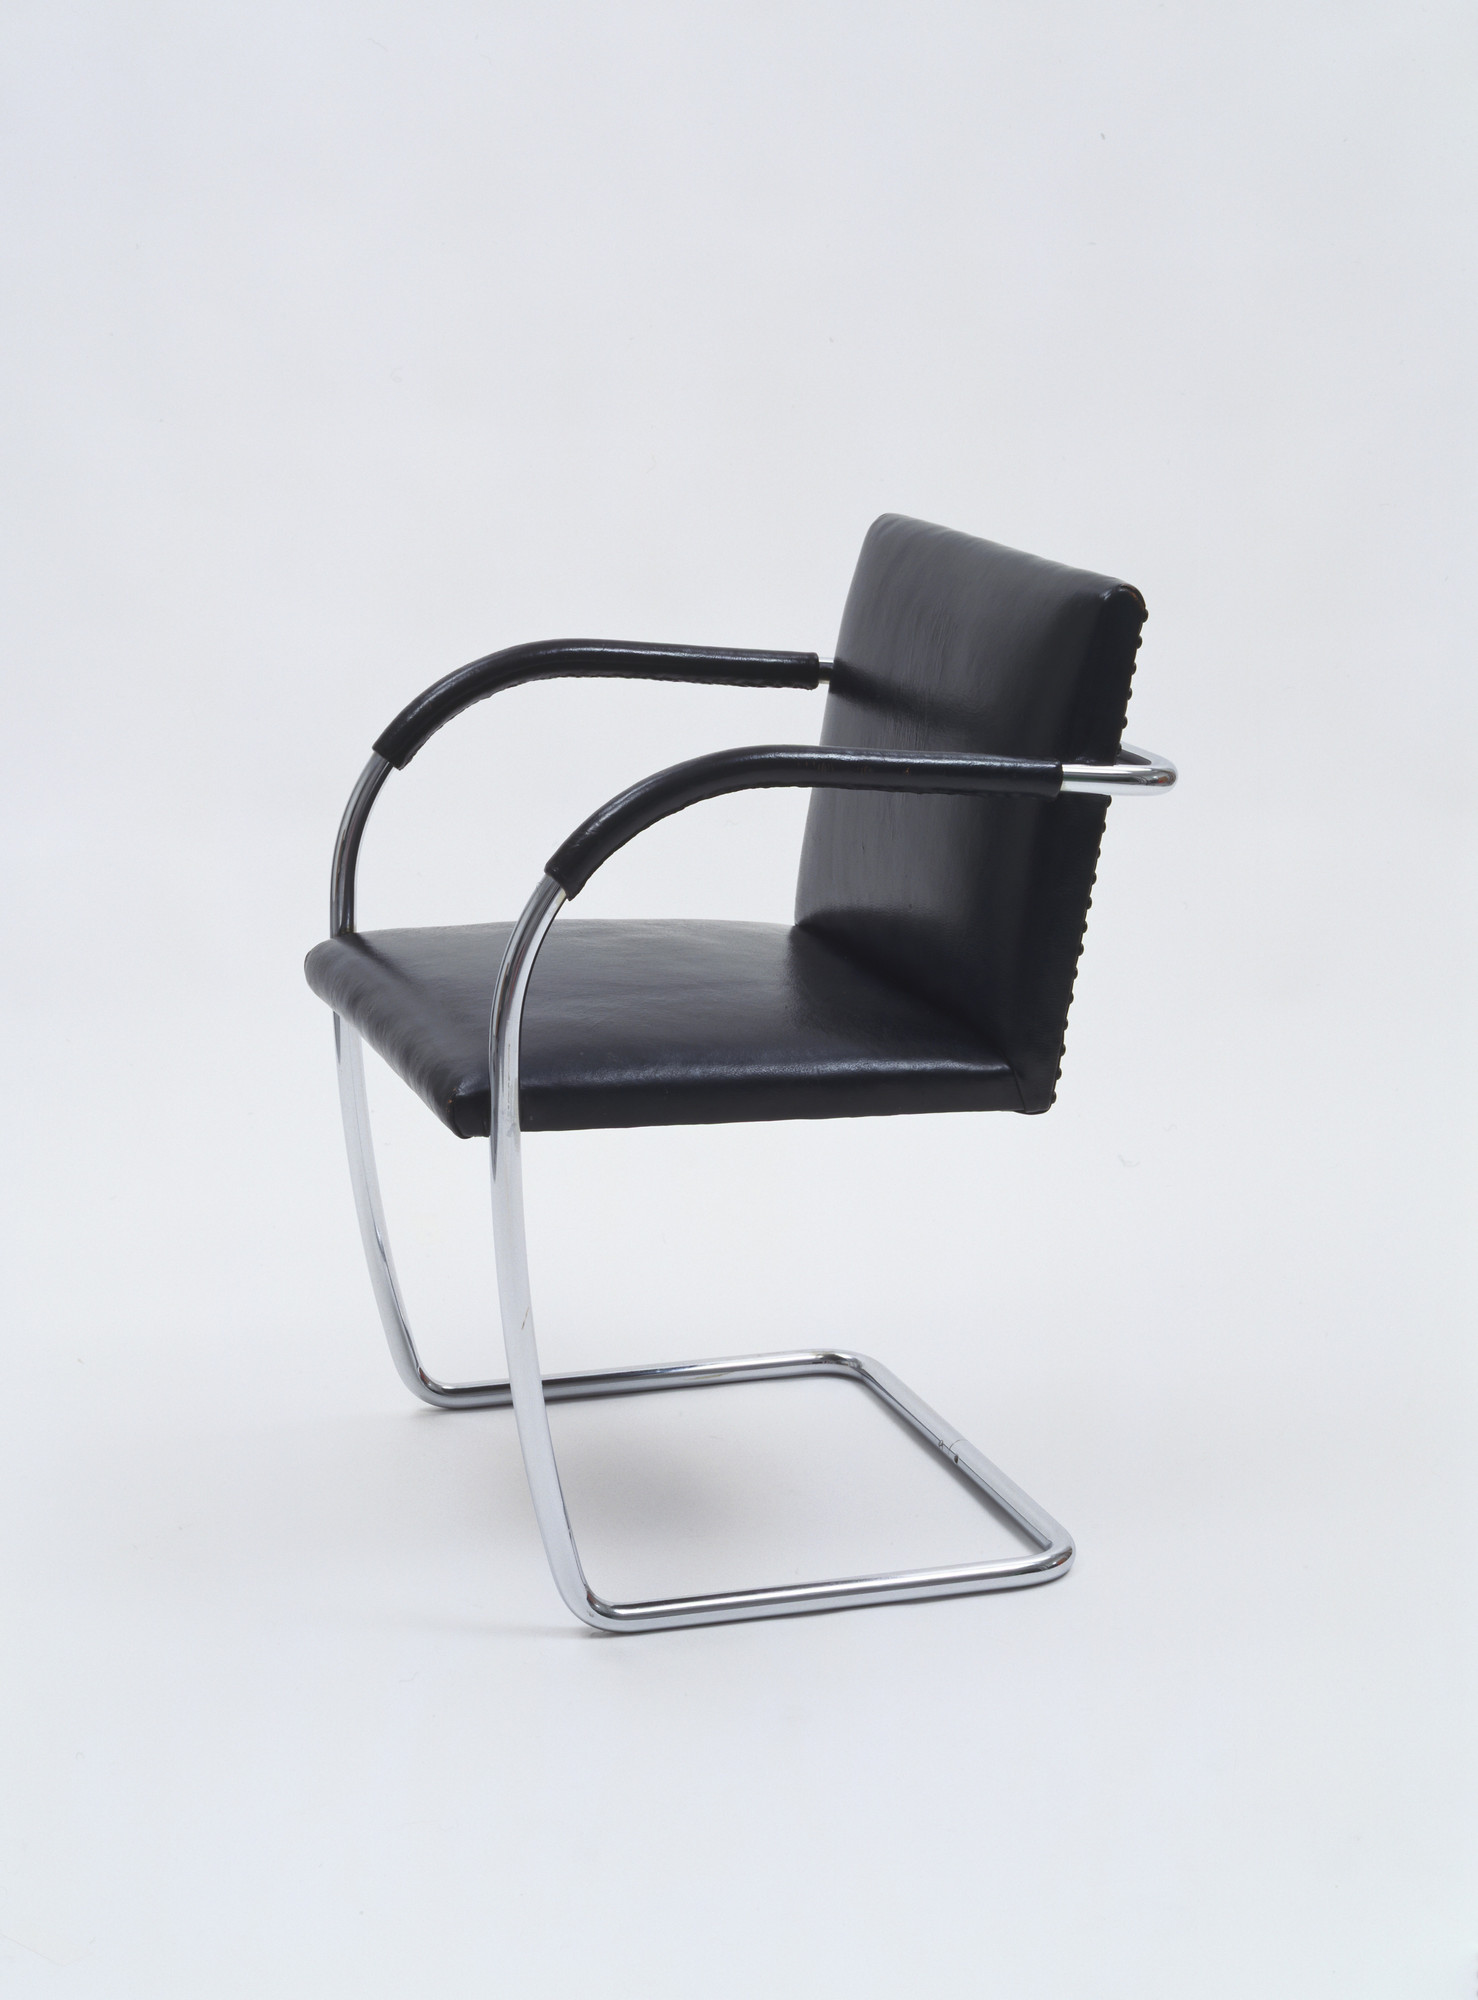 Ludwig Mies Van Der Rohe Brno Chair Designed 1929 1930 This